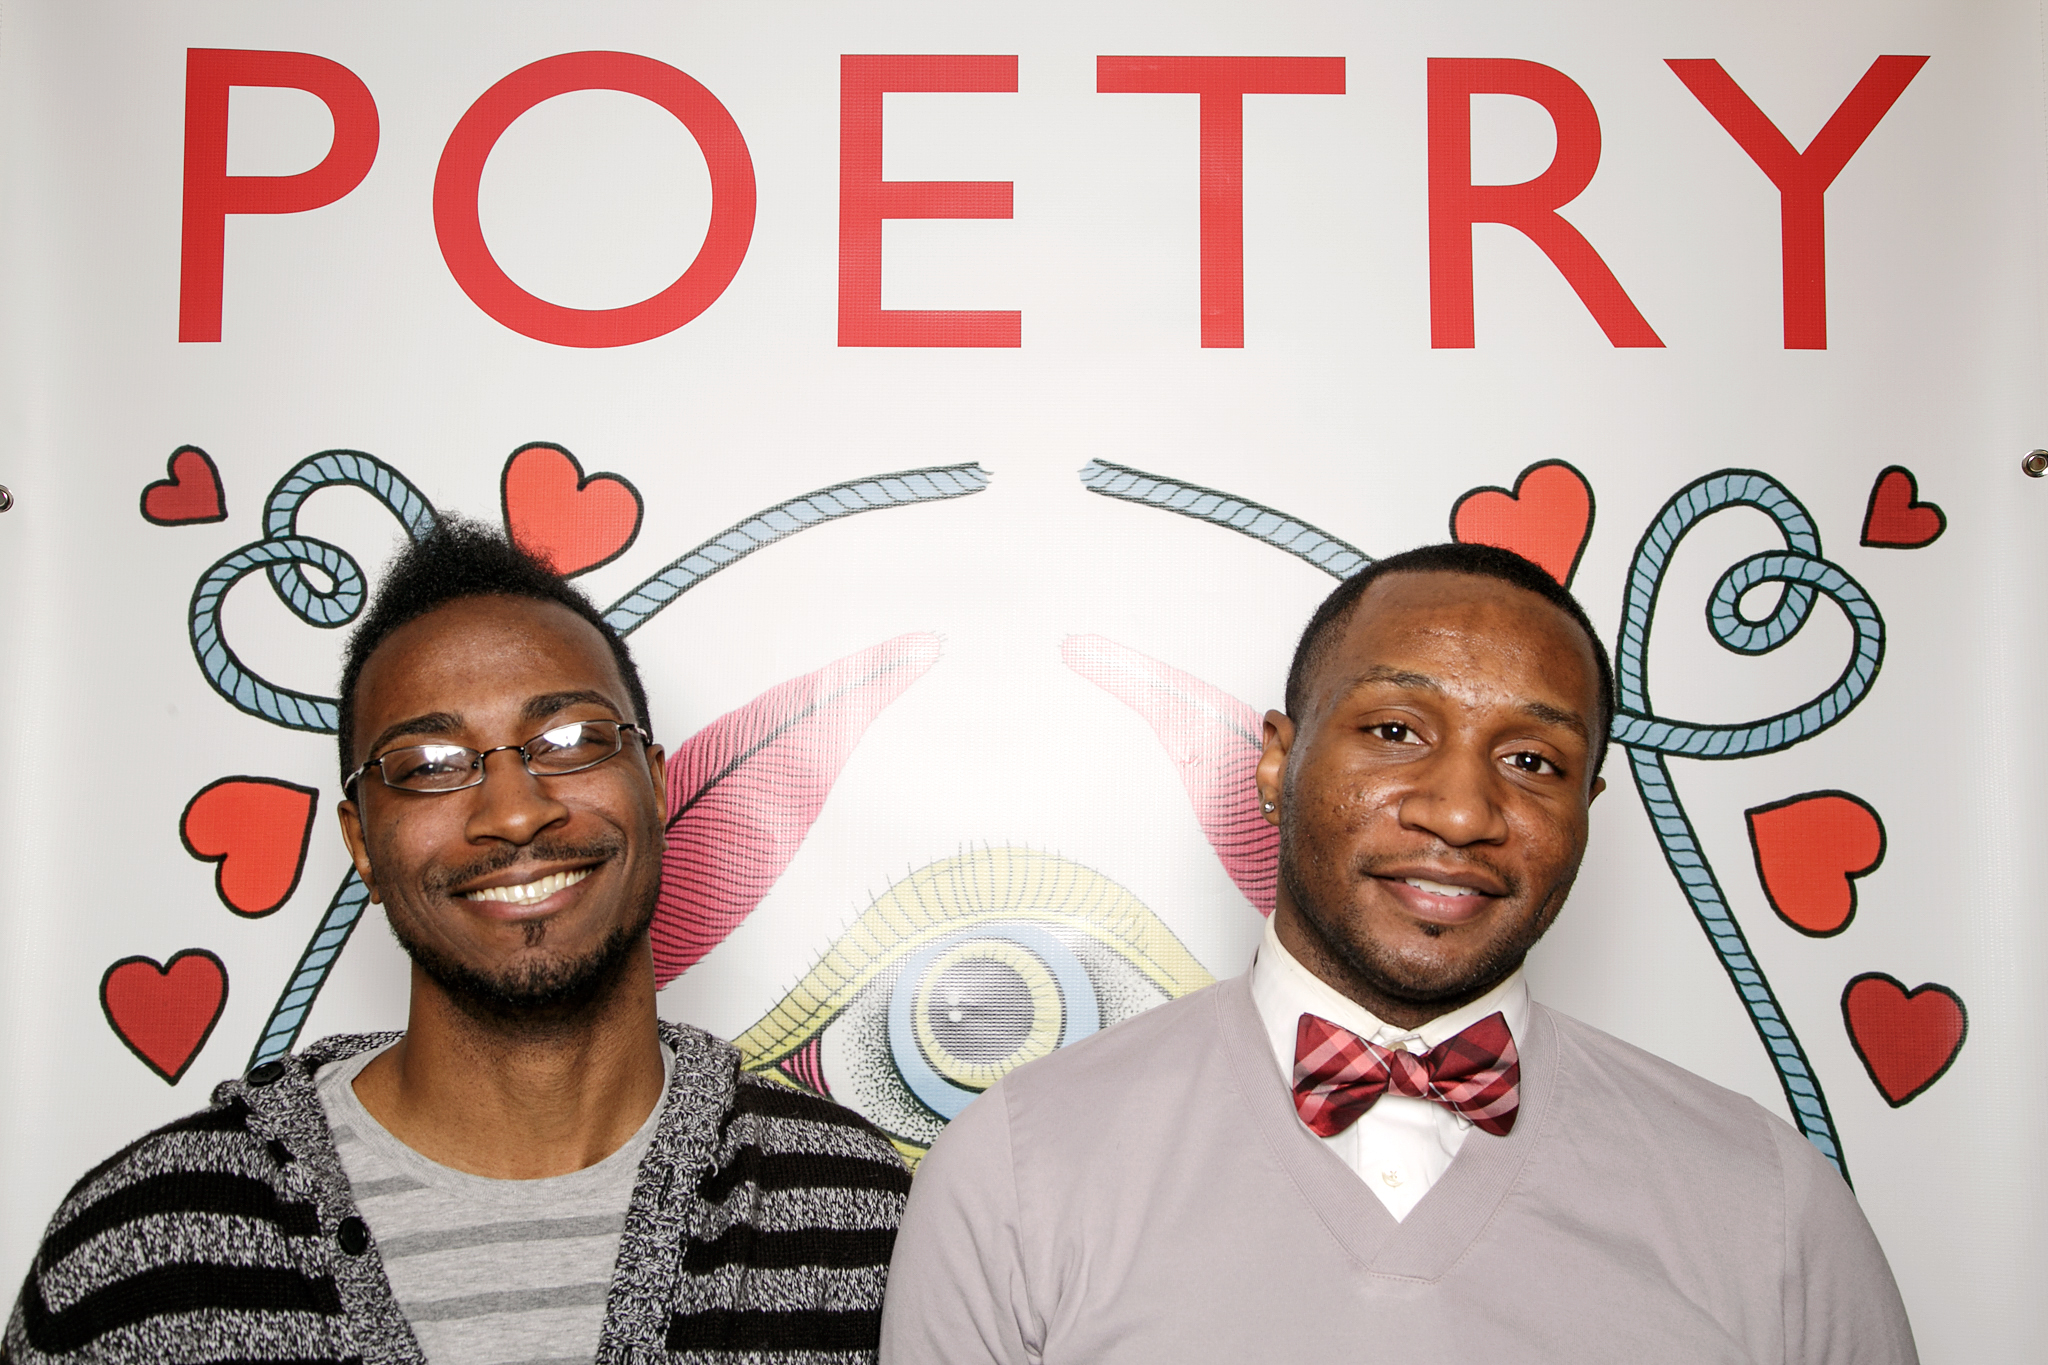 poetry wintertime party photo booth, january 2016